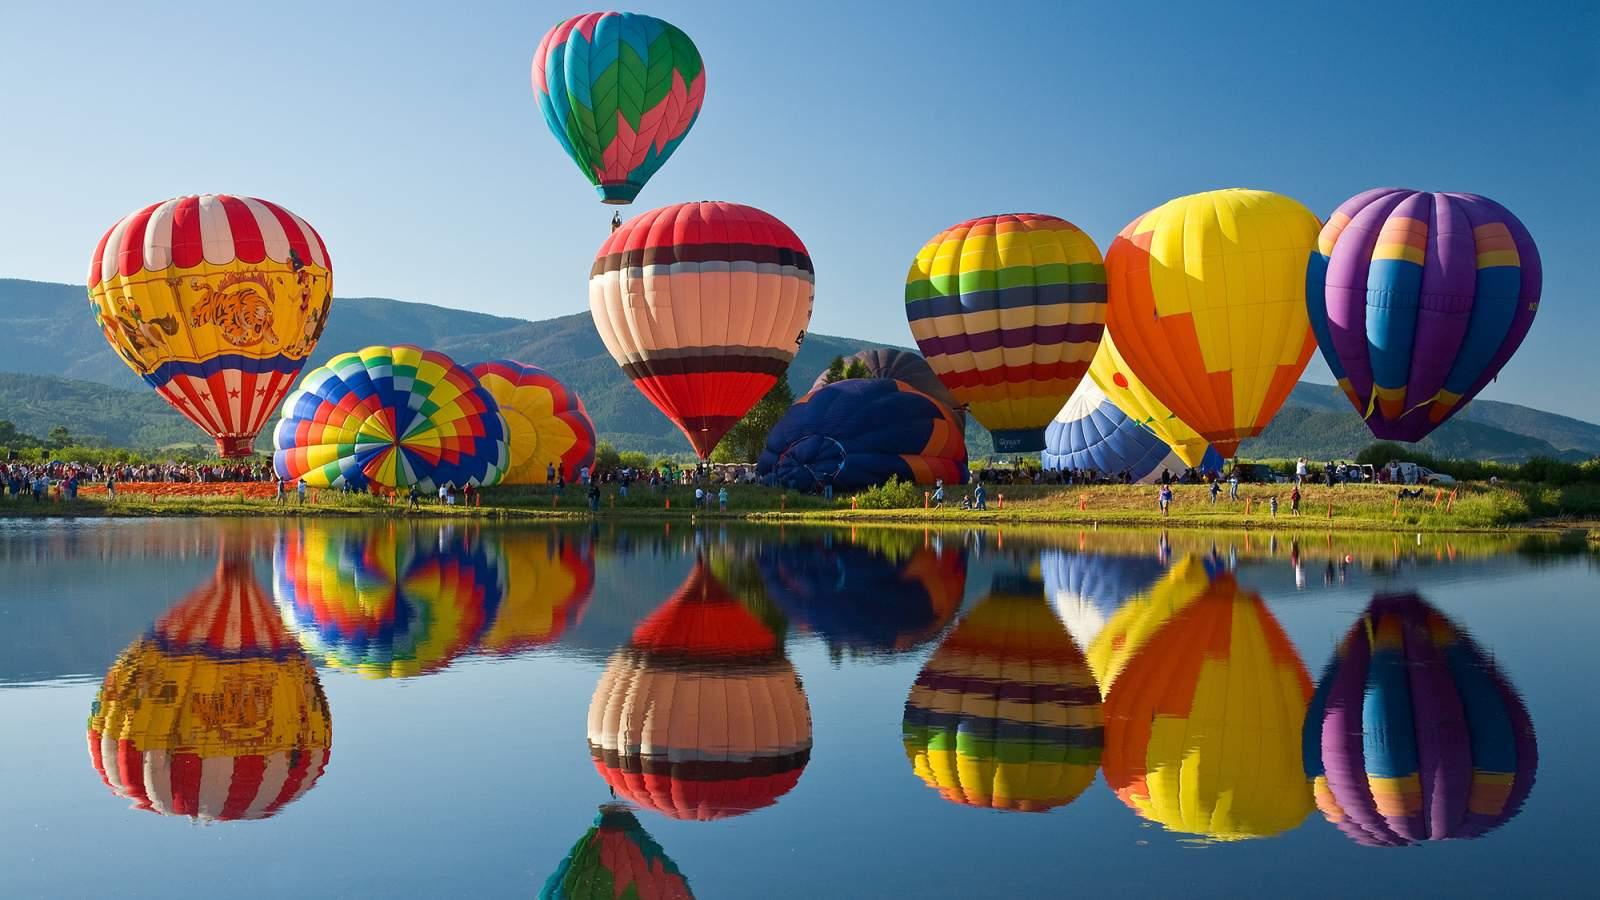 Sheraton Steamboat Resort Villas - Hot Air Balloon Rides